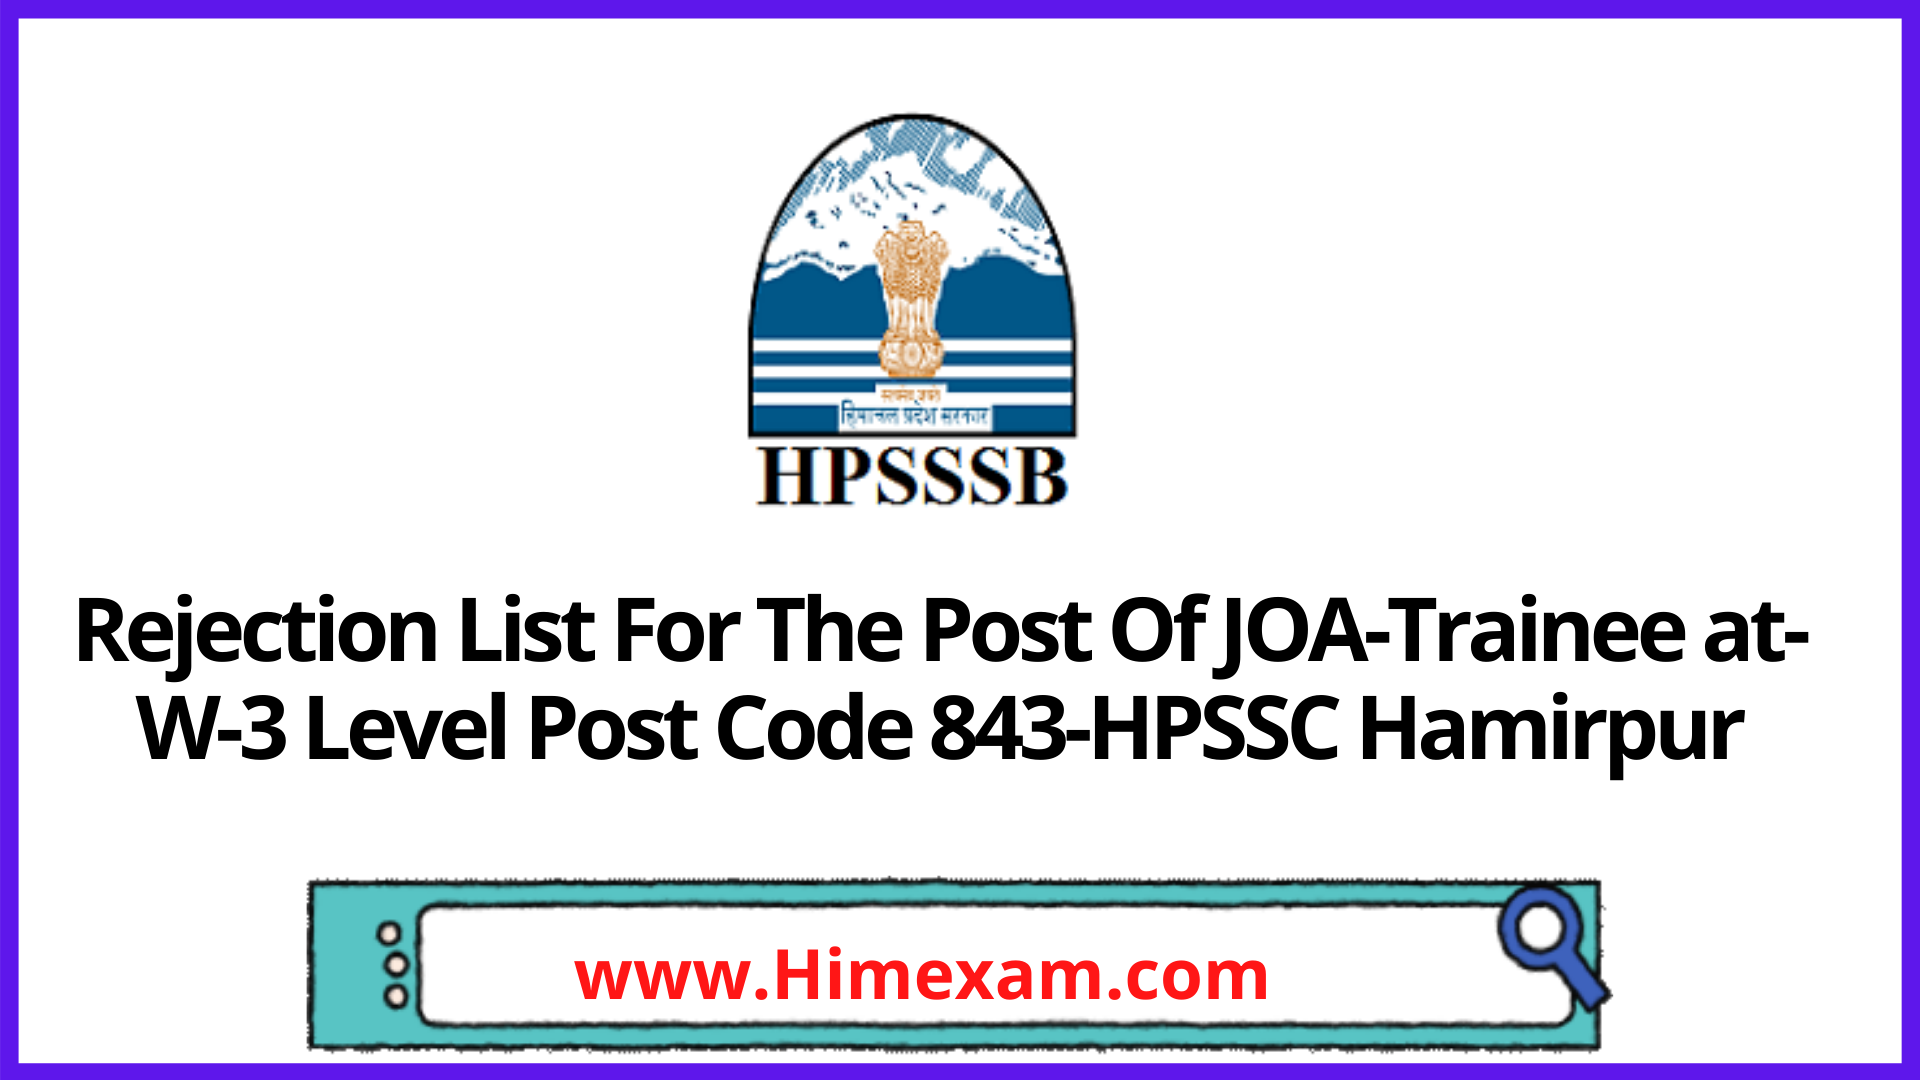 Rejection List For The Post Of JOA-Trainee at-W-3 Level Post Code 843-HPSSC Hamirpur